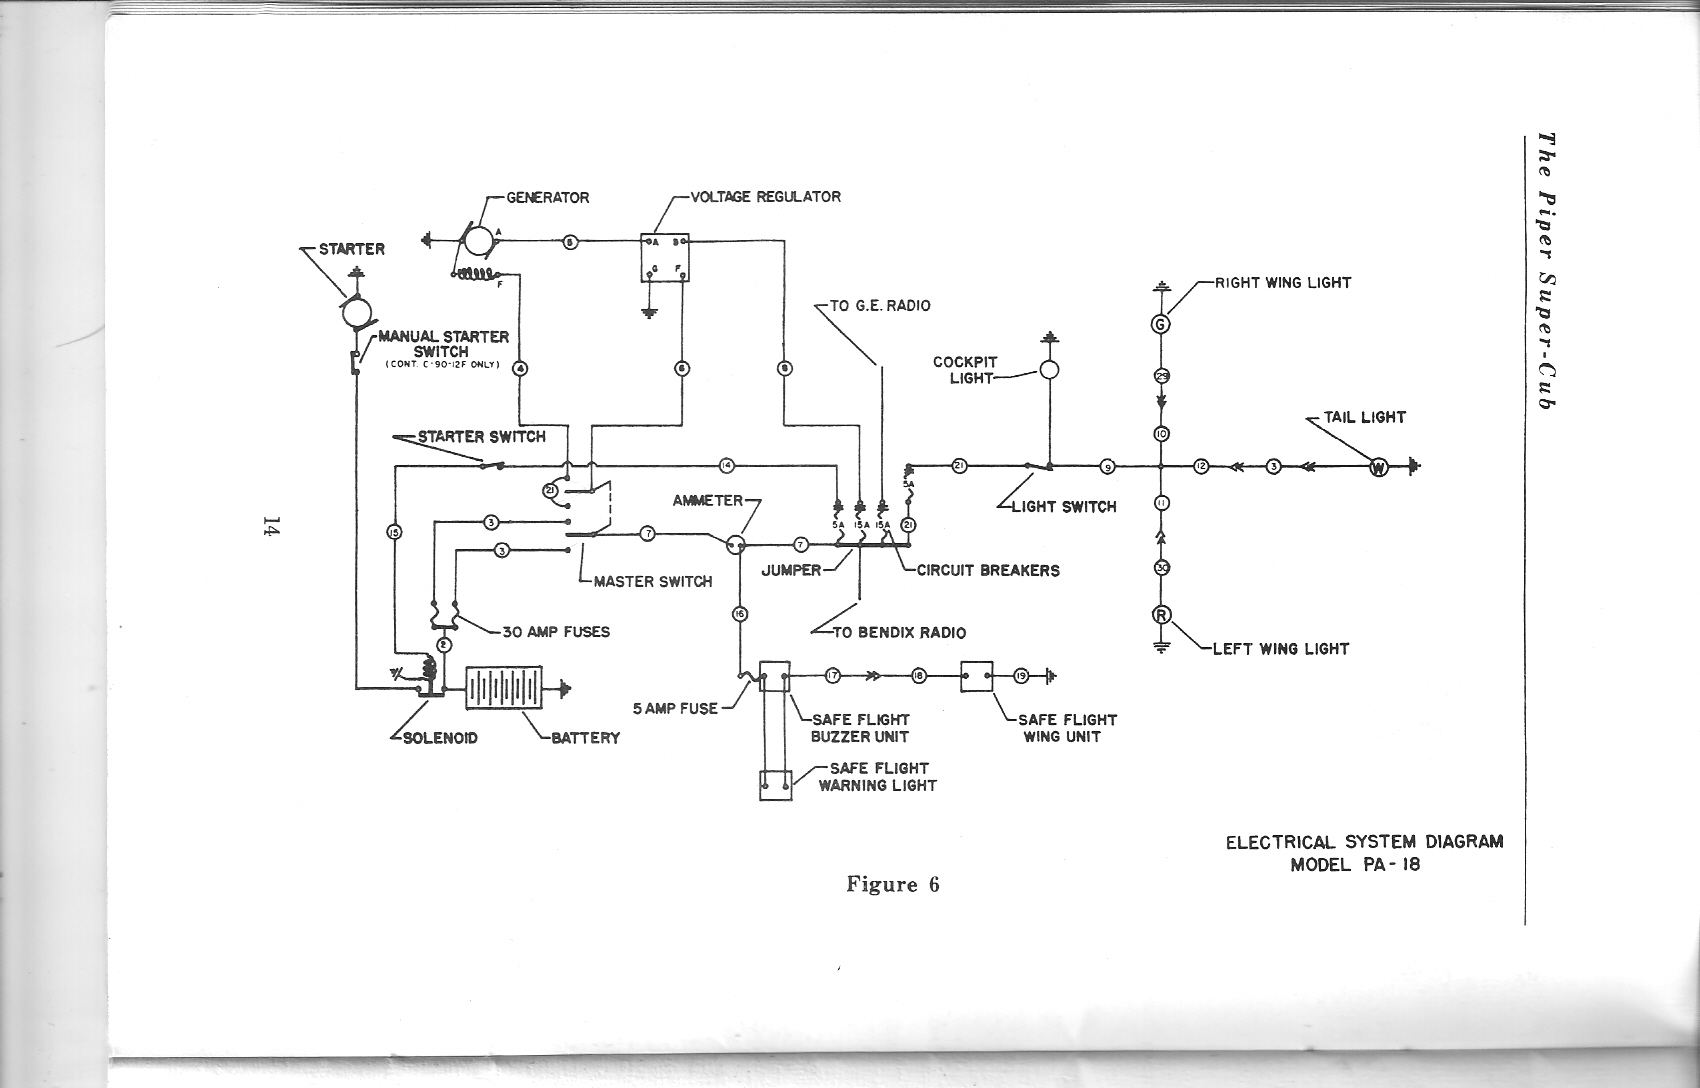 Pa Wiring Diagram: electrical wiring diagram,Design